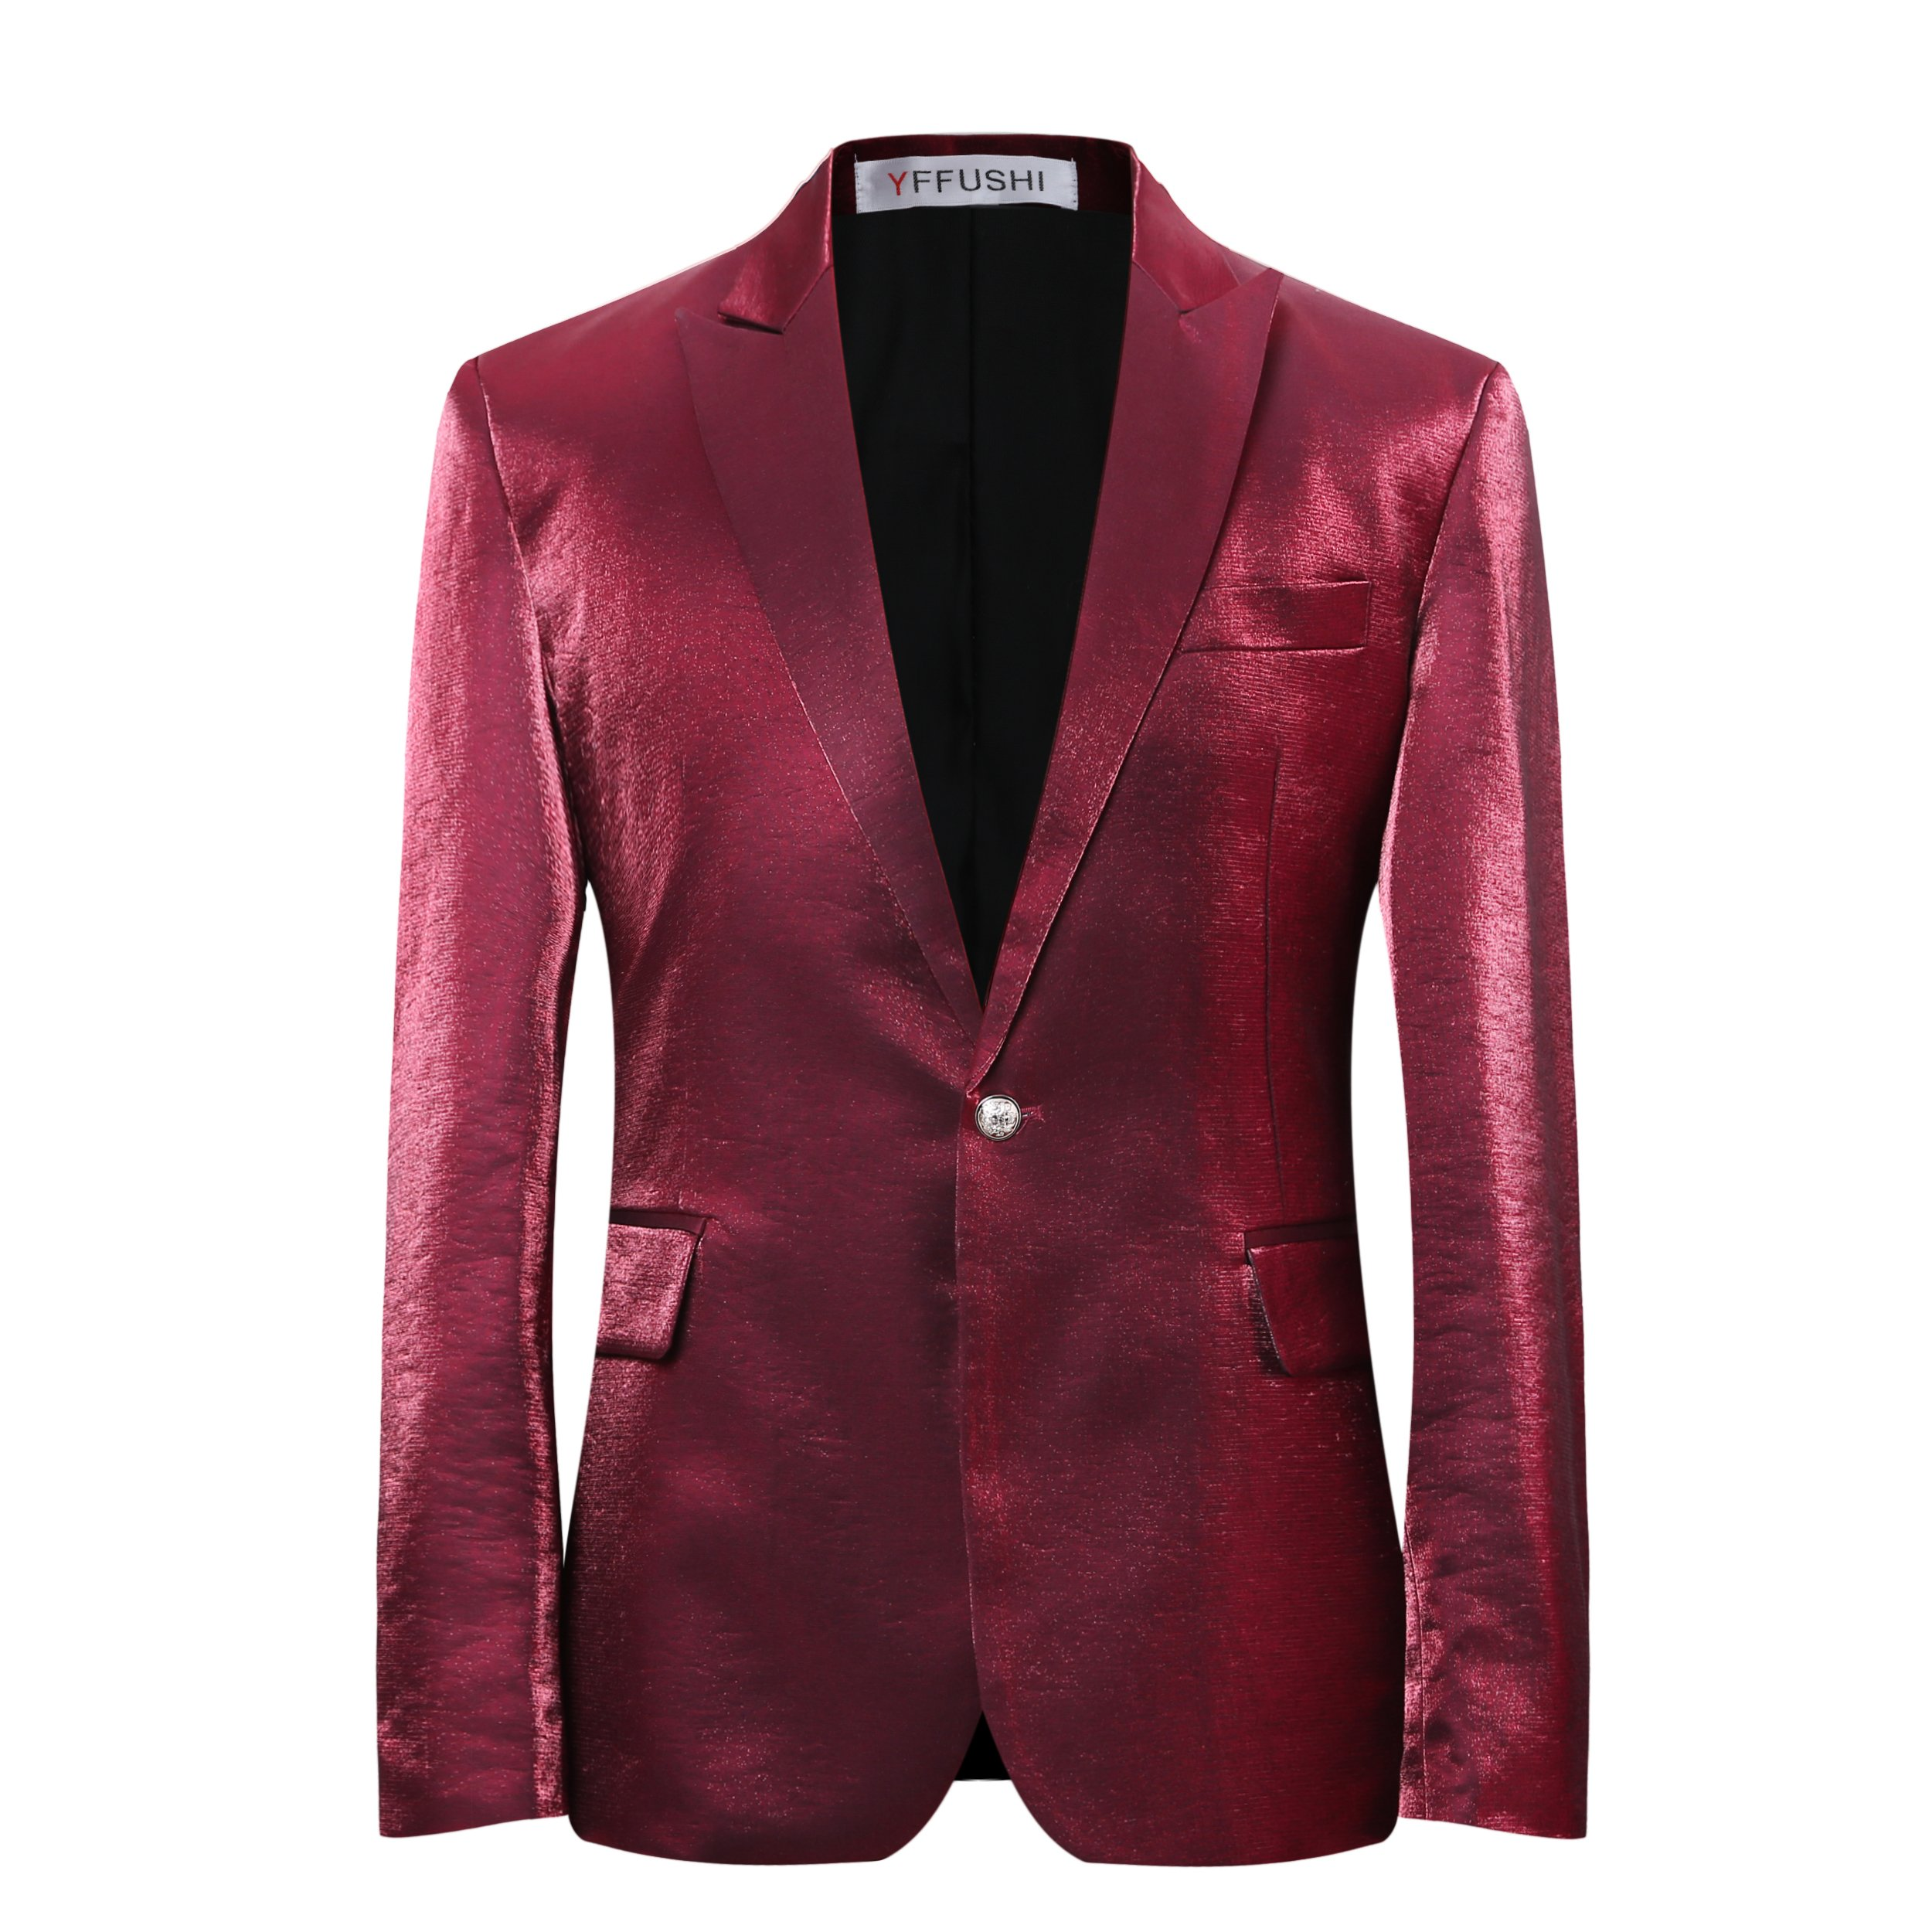 Mens Stylish One Button Red Floral Printed Jacket Slim Fit